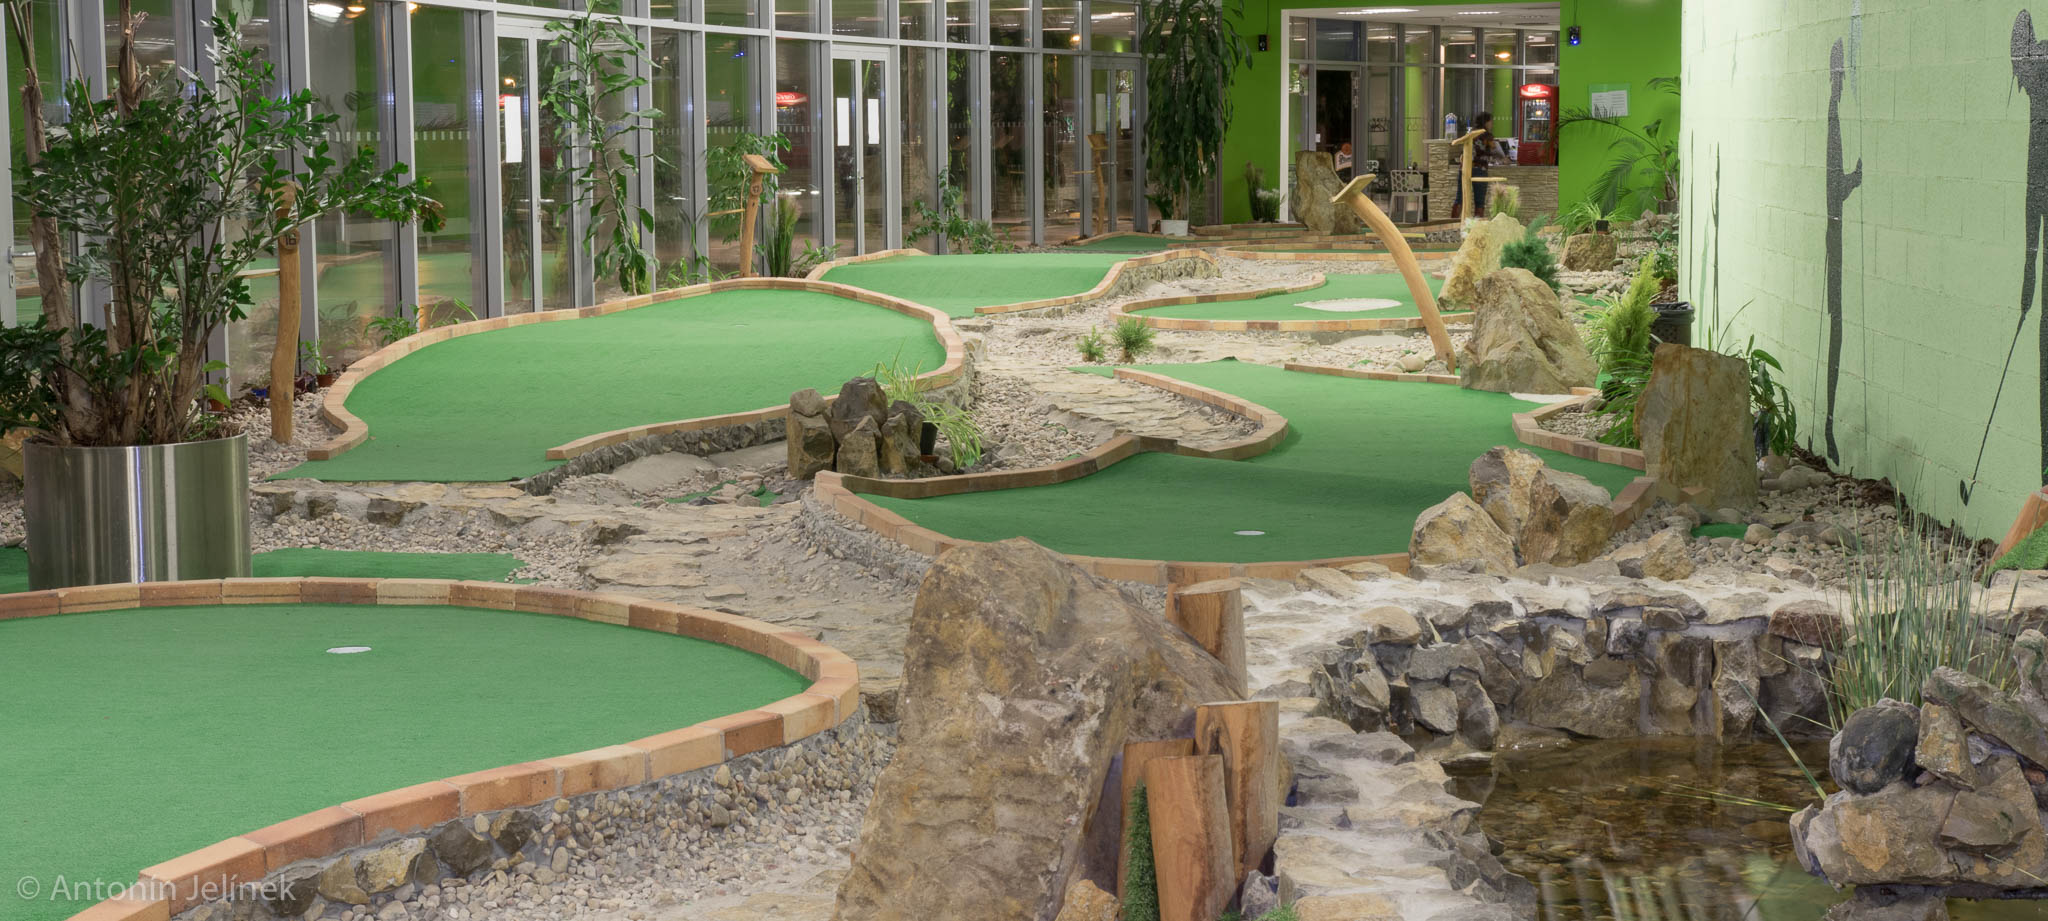 adventure-minigolf-3